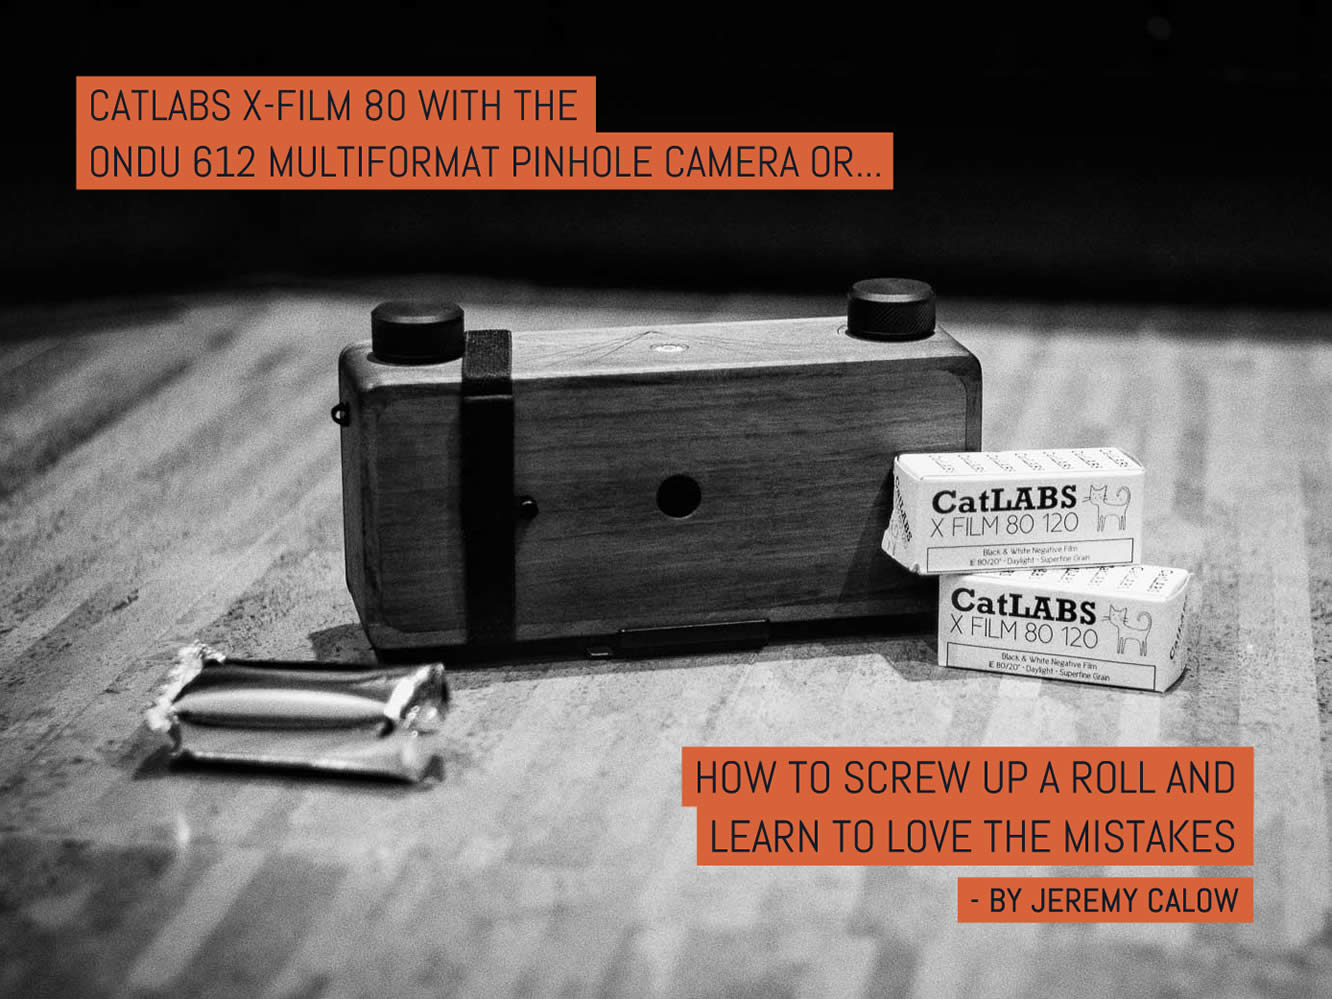 CatLABS X-Film 80 with the ONDU 612 MULTIFORMAT pinhole camera or... how to screw up a roll and learn to love the mistakes